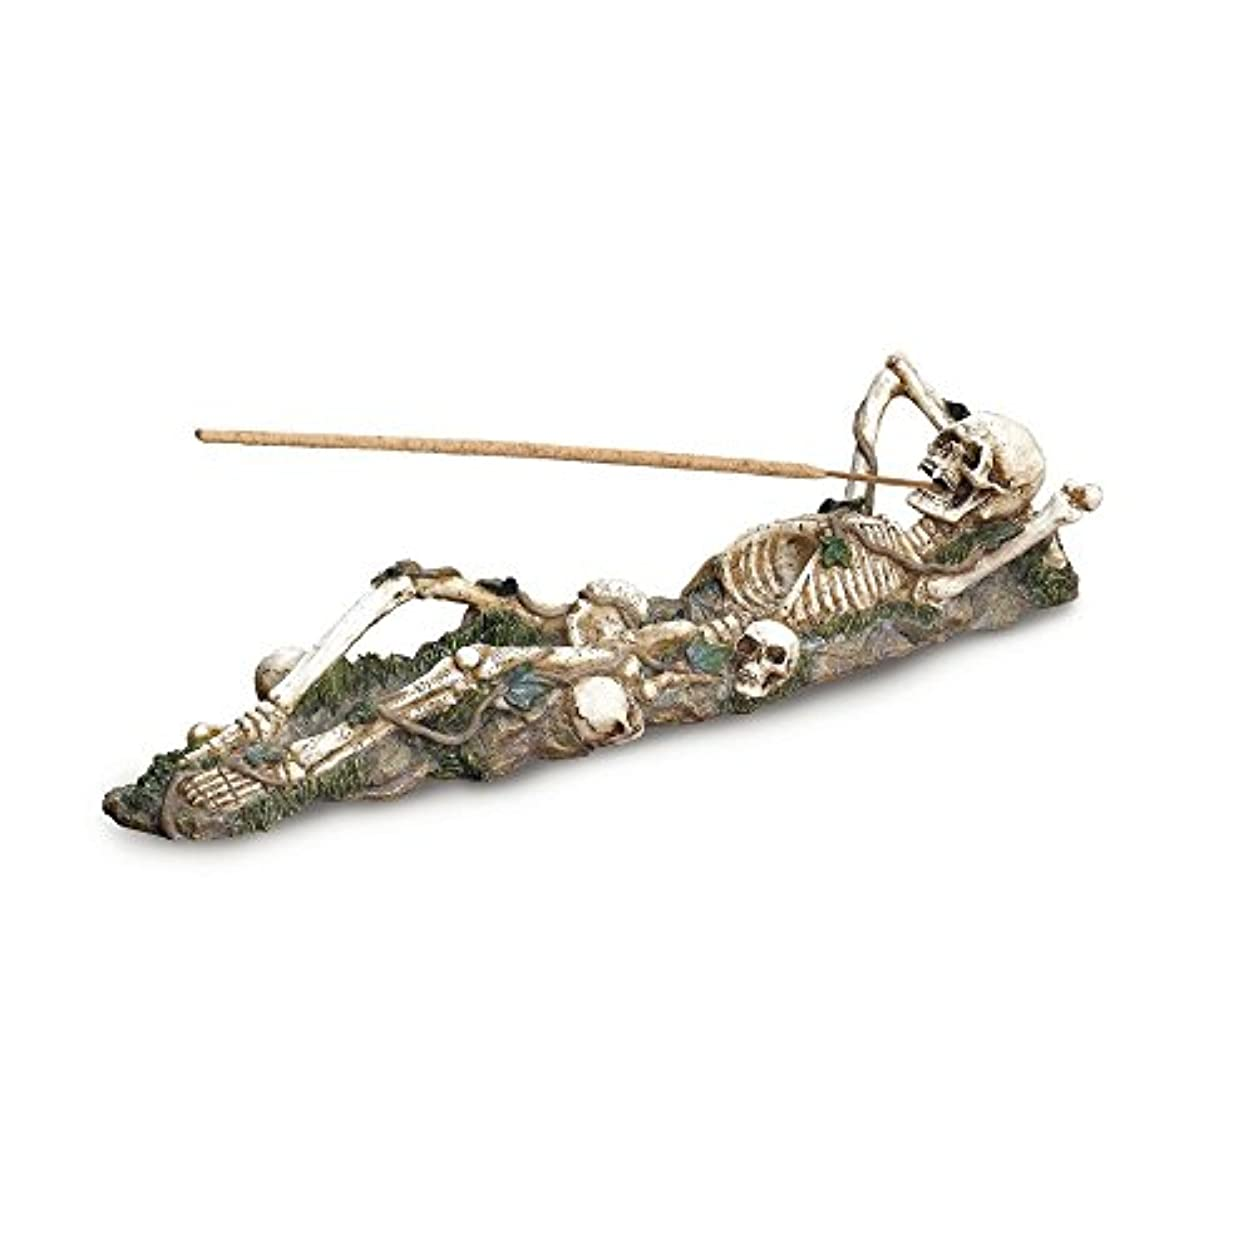 の中で端末豊かにするGifts & Decor Skeleton Incense Burner Holder Collector Halloween Gift by Gifts & Decor